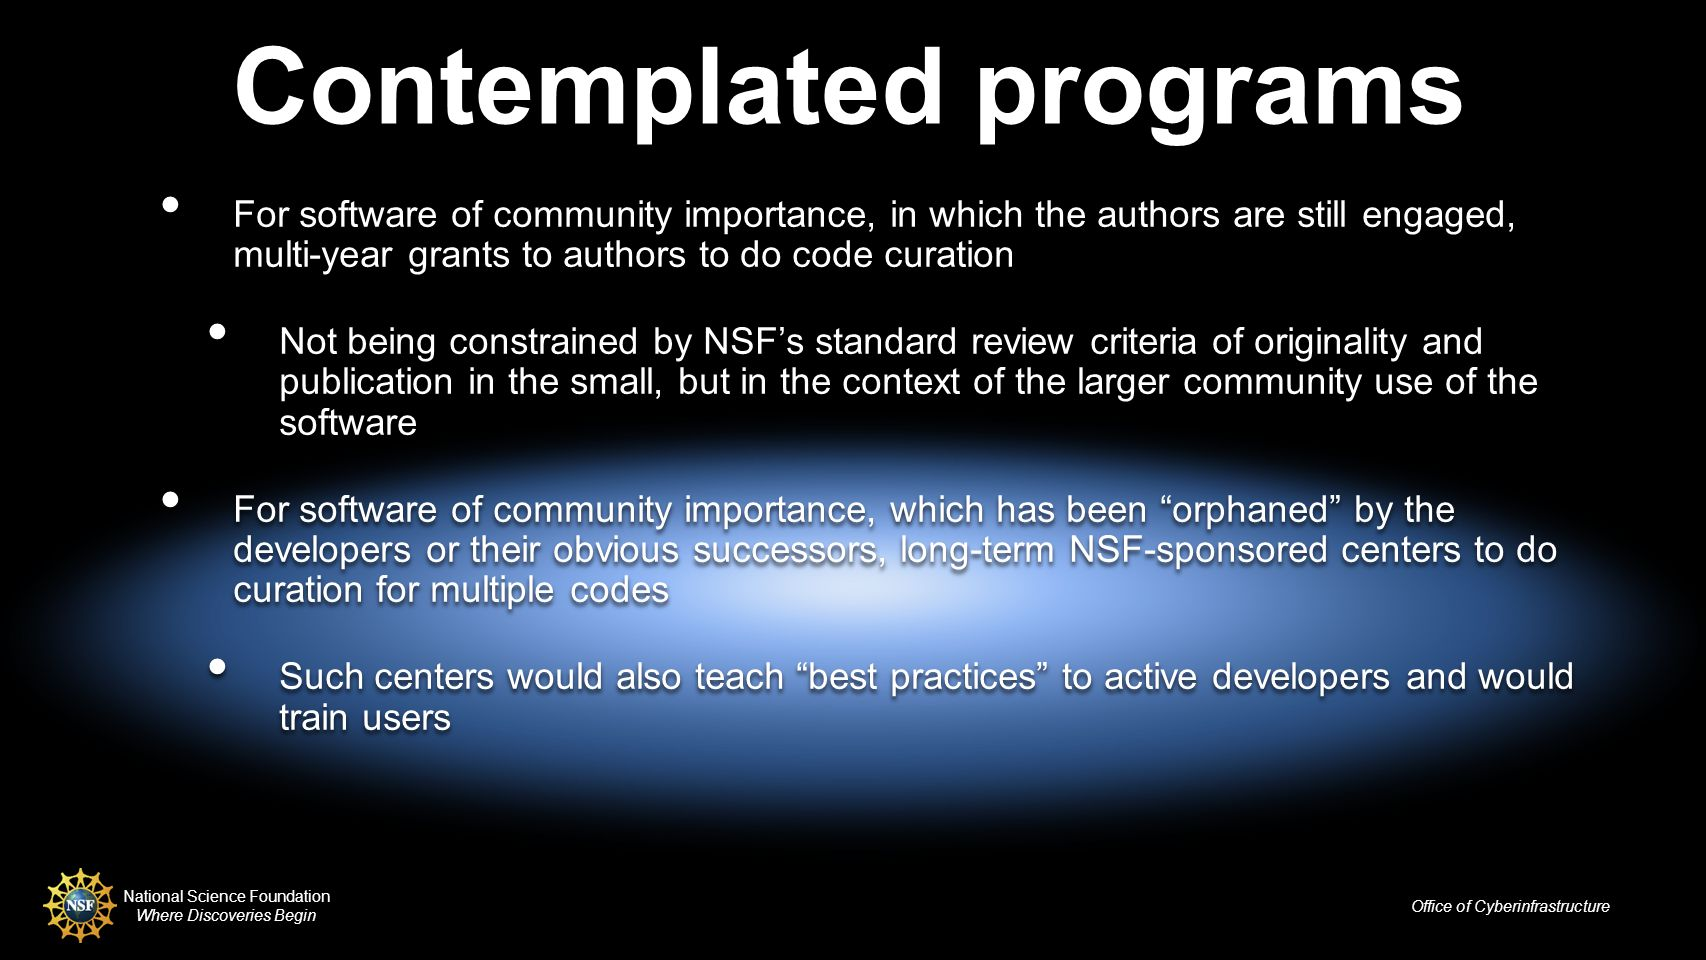 National Science Foundation Where Discoveries Begin Office of Cyberinfrastructure Contemplated programs For software of community importance, in which the authors are still engaged, multi-year grants to authors to do code curation Not being constrained by NSFs standard review criteria of originality and publication in the small, but in the context of the larger community use of the software For software of community importance, which has been orphaned by the developers or their obvious successors, long-term NSF-sponsored centers to do curation for multiple codes Such centers would also teach best practices to active developers and would train users